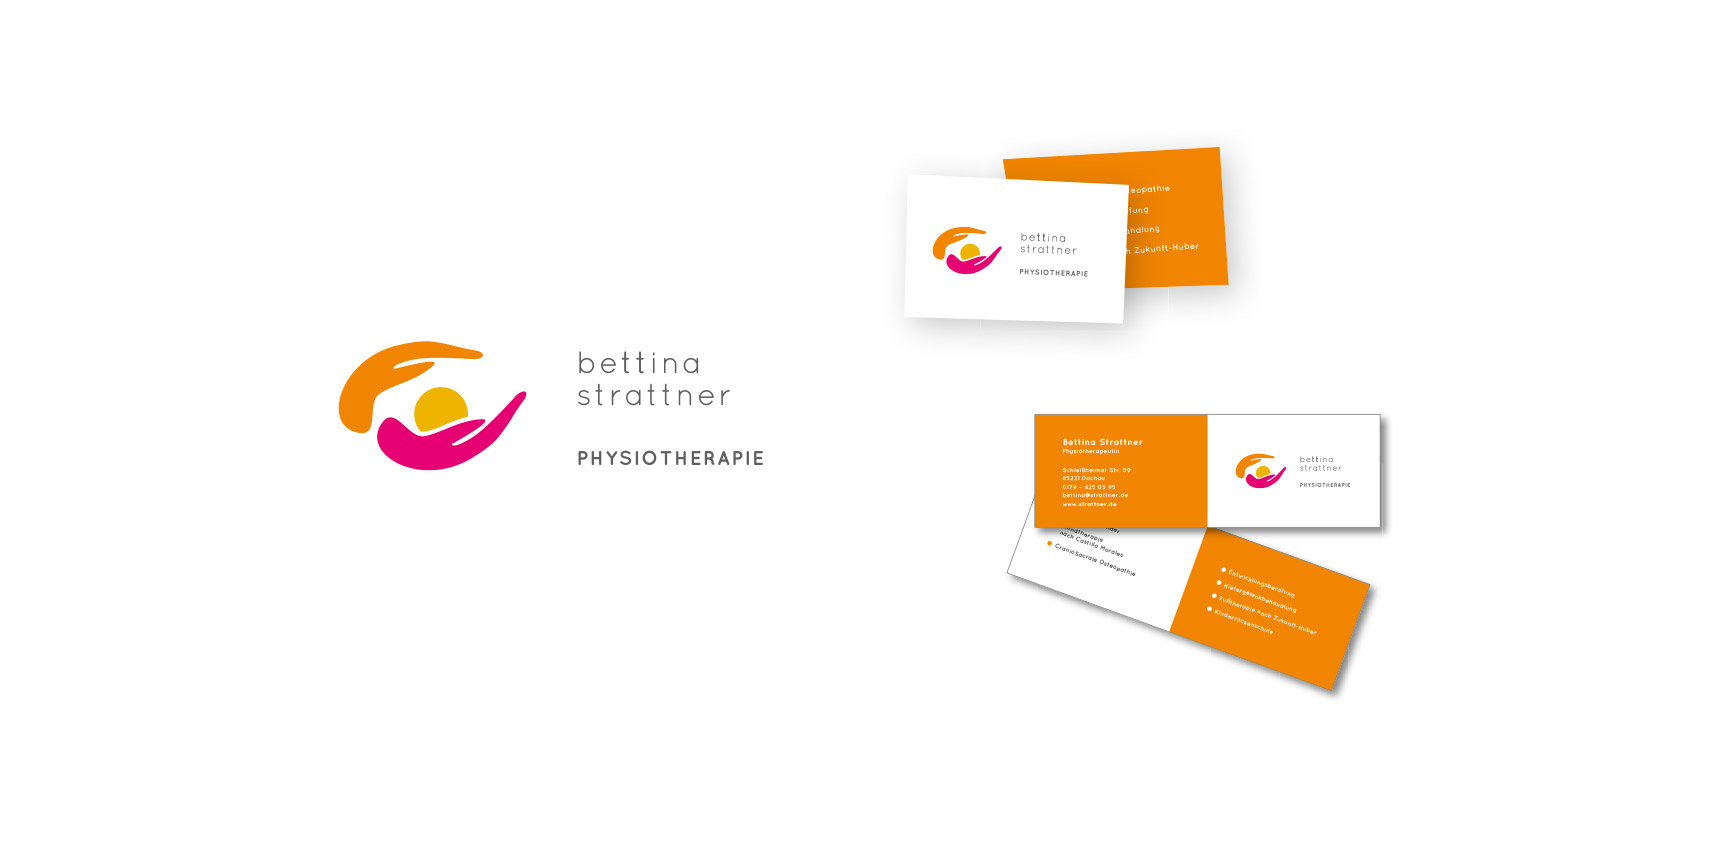 Bettina Strattner Physiotherapie